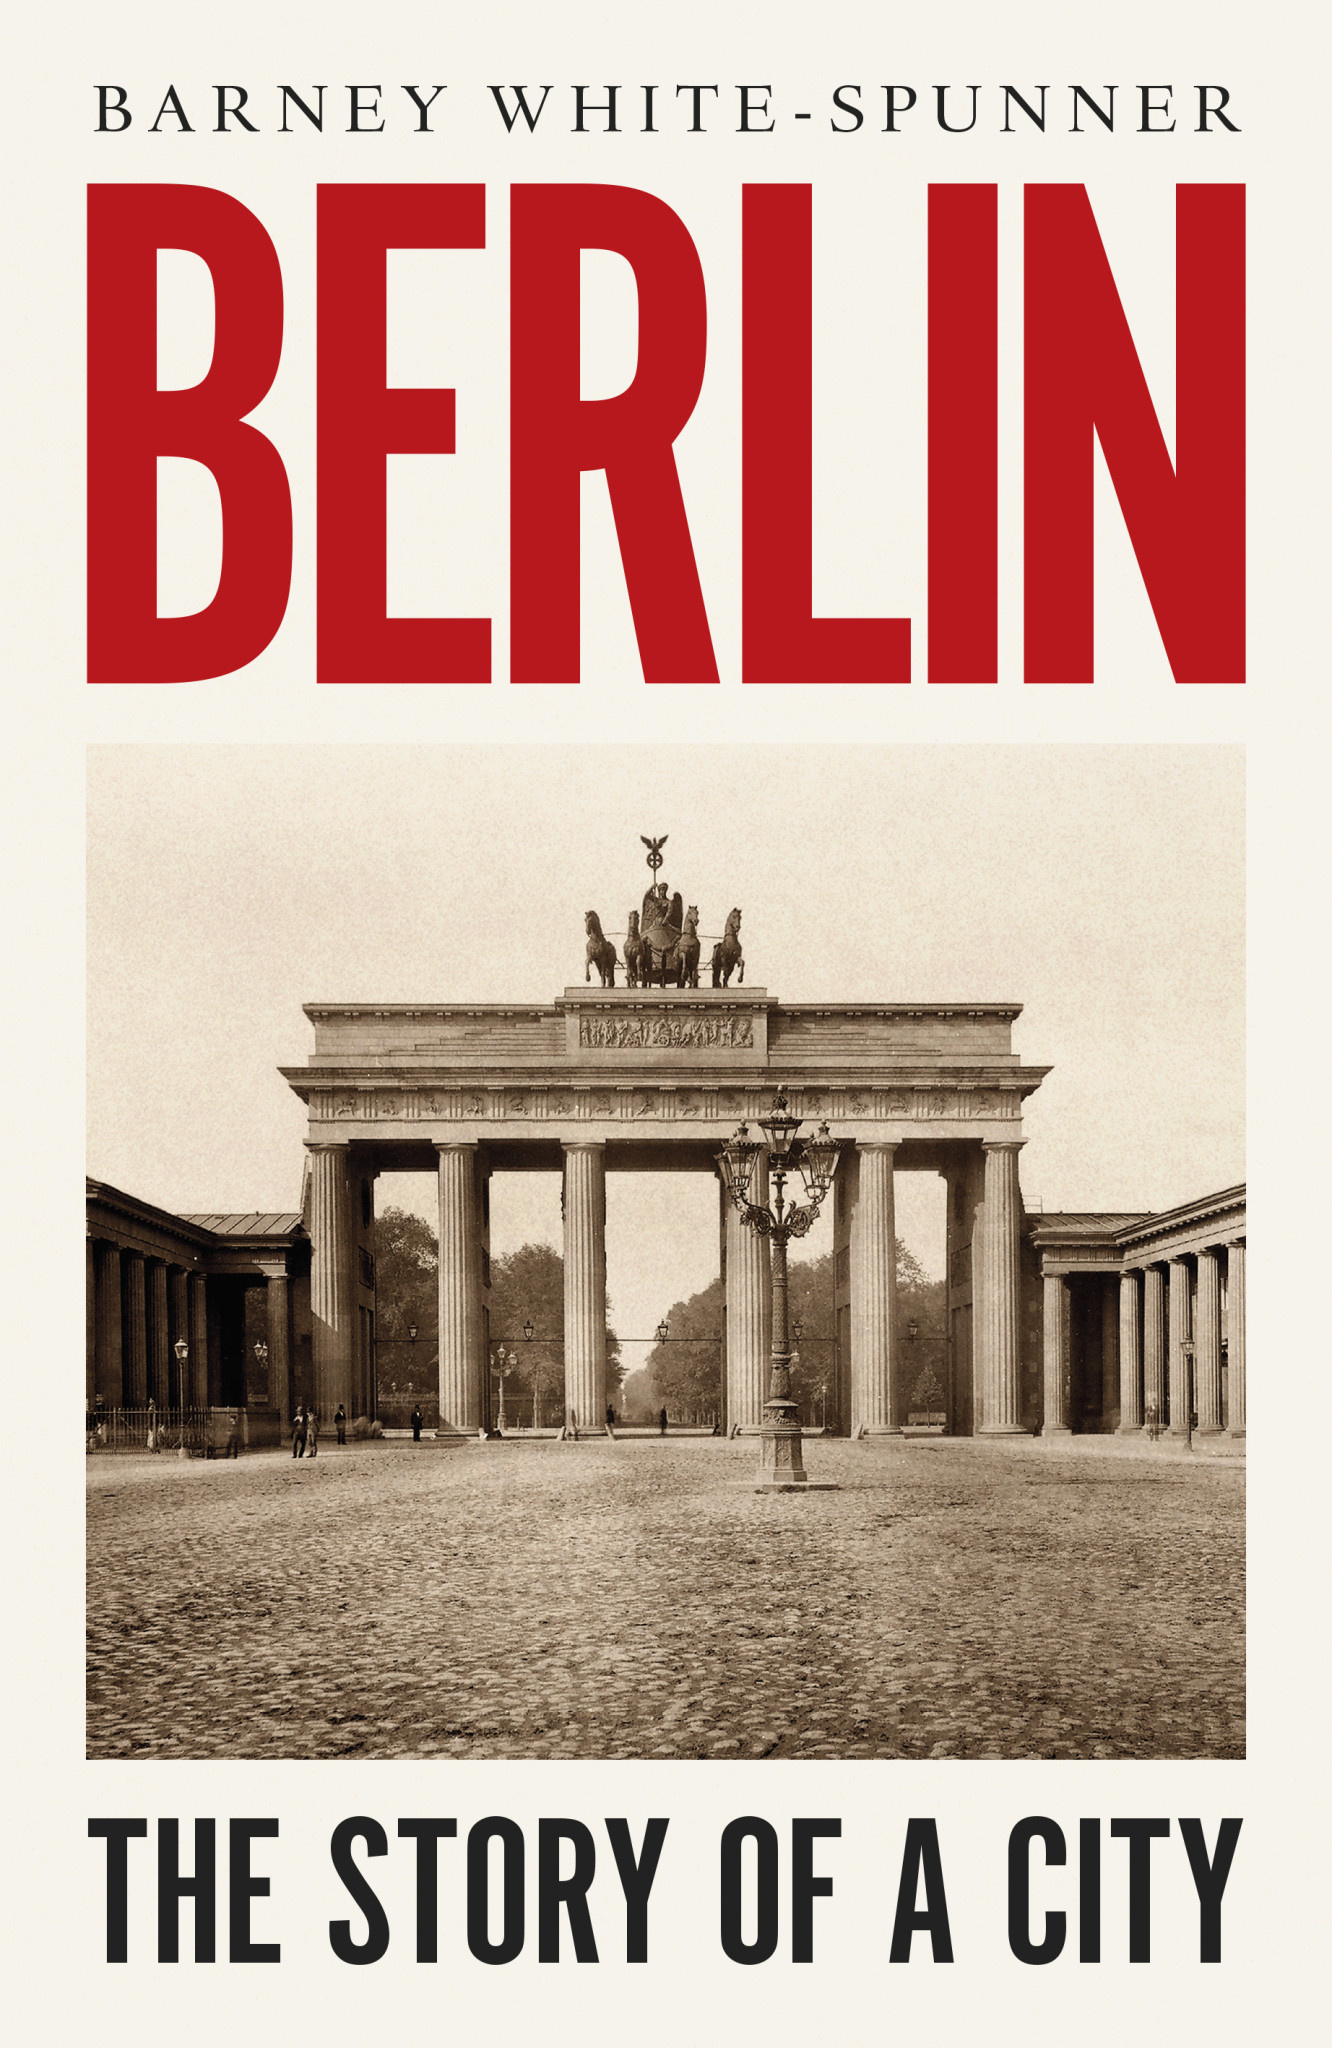 Berlin: The Story of A City Author Barney White-Spunner